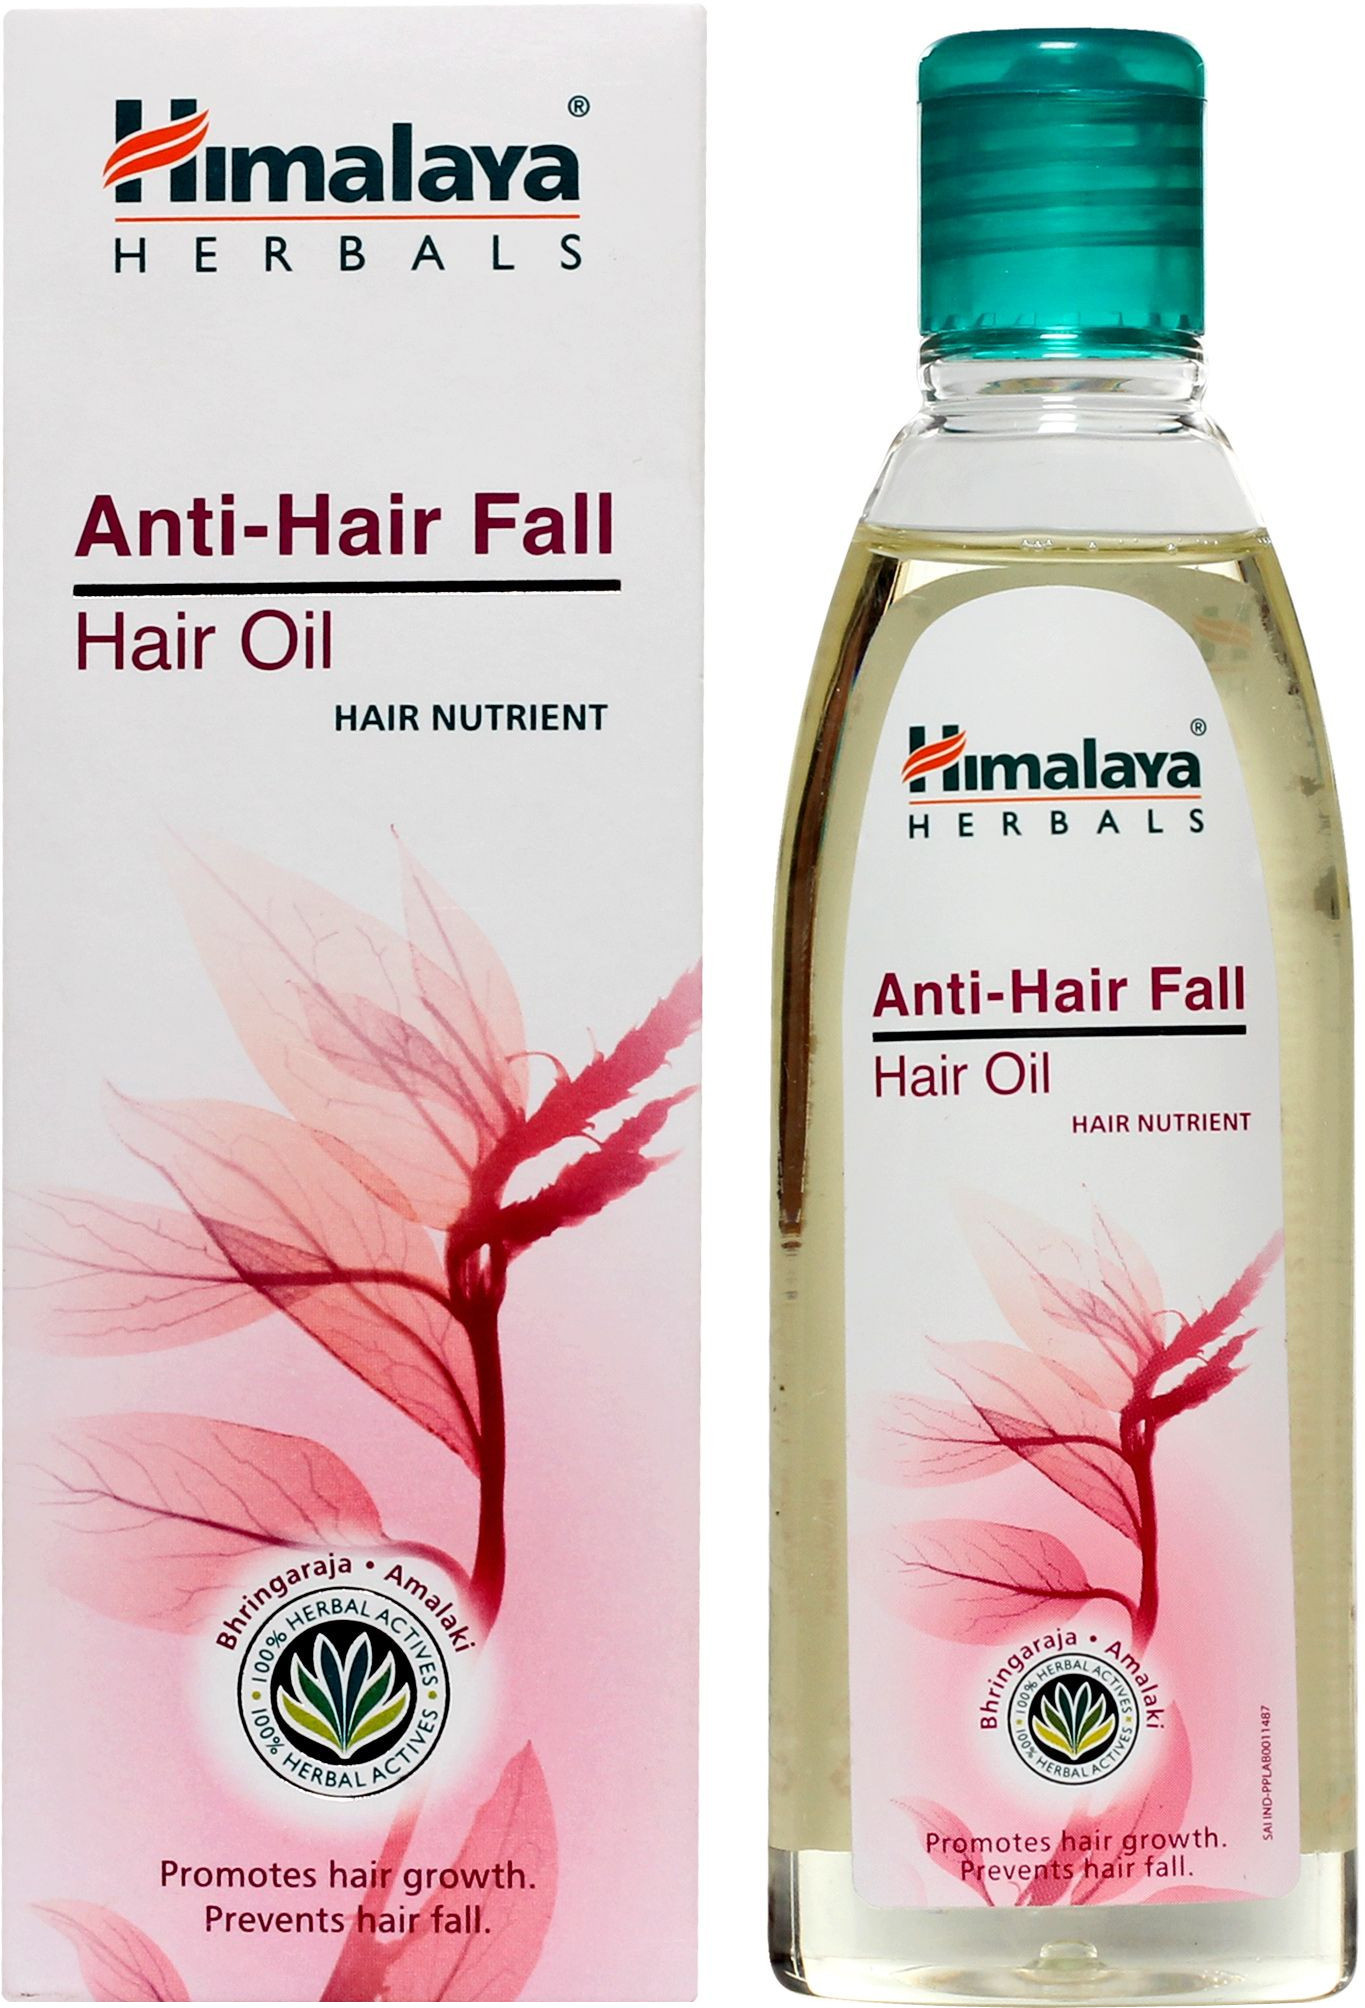 Himalaya Anti-Hairfall Hair Oil Review